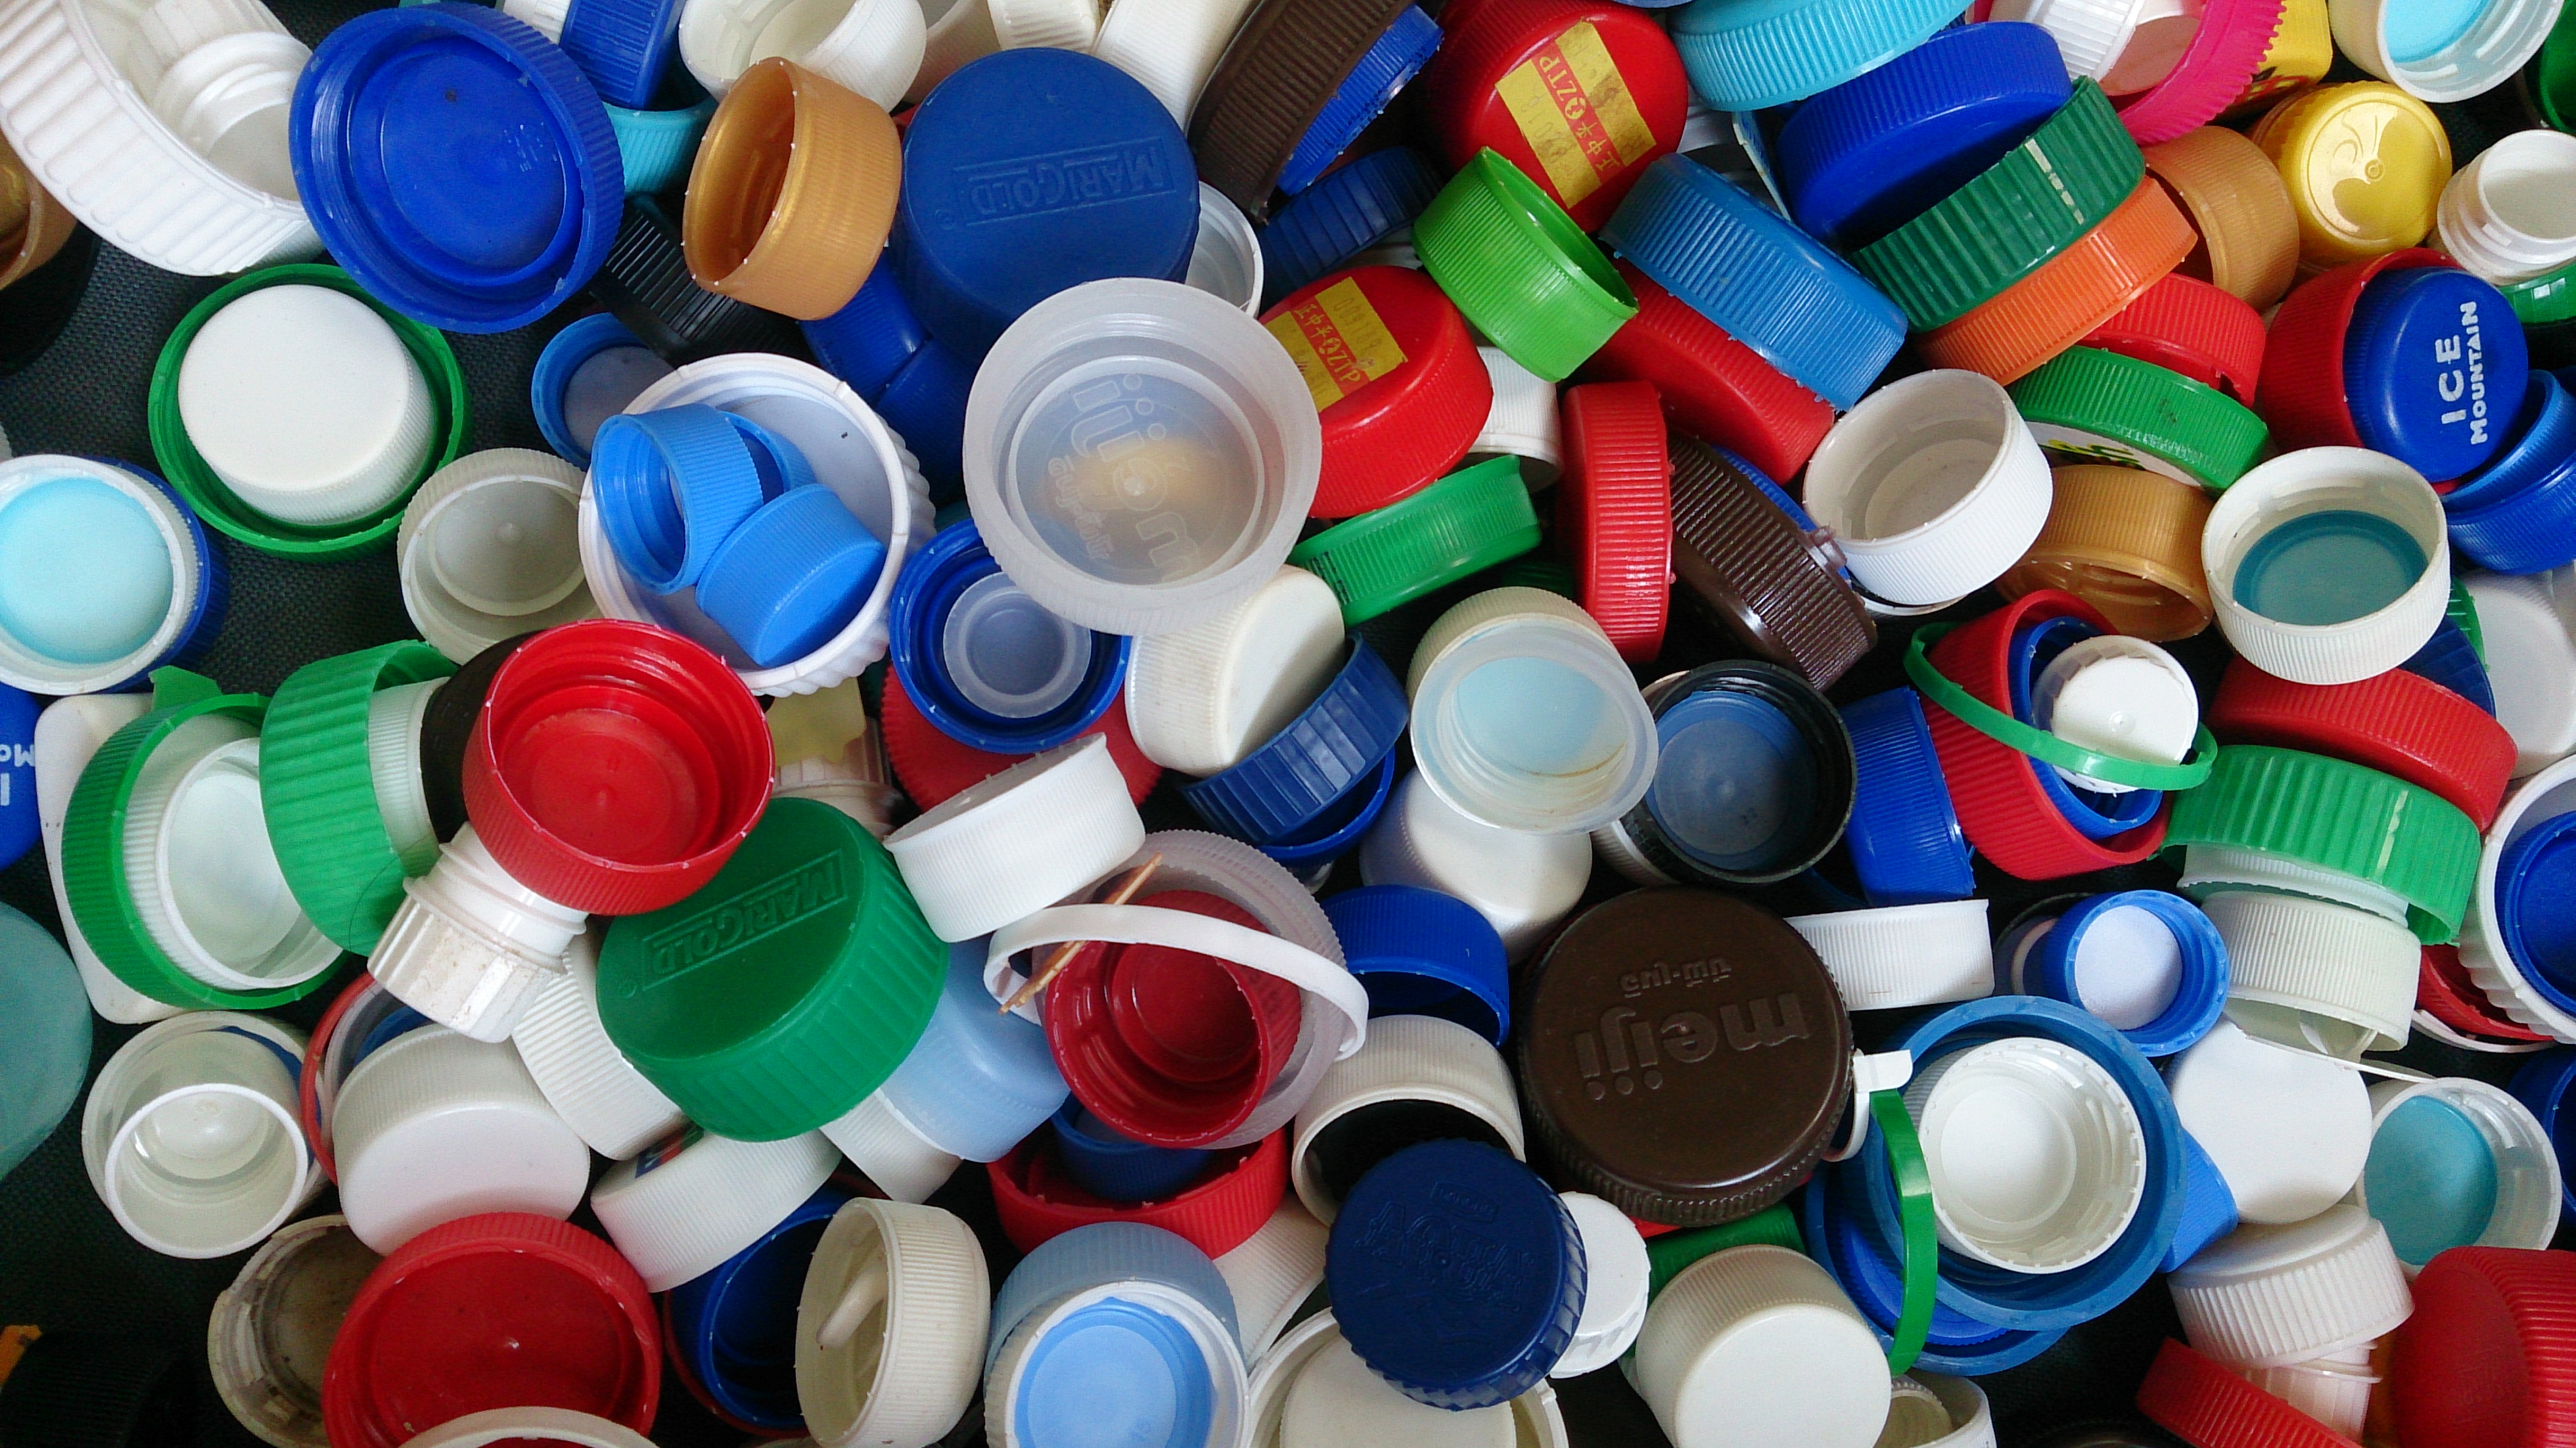 recycle caps of plastic bottles, changing the world